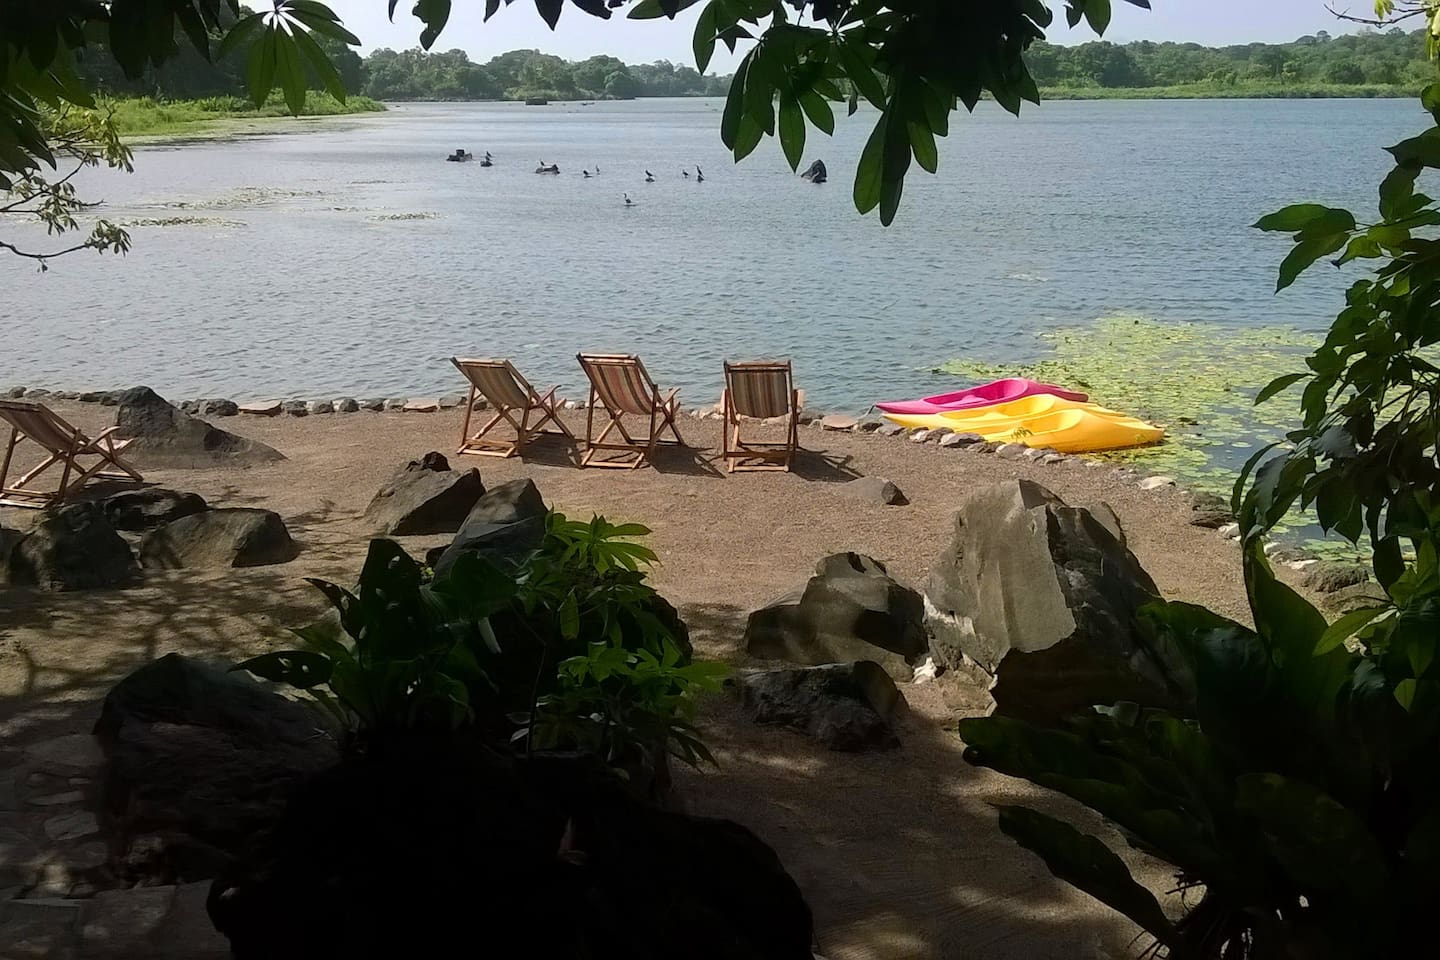 The largest and nicest beach area in the Archipelago!